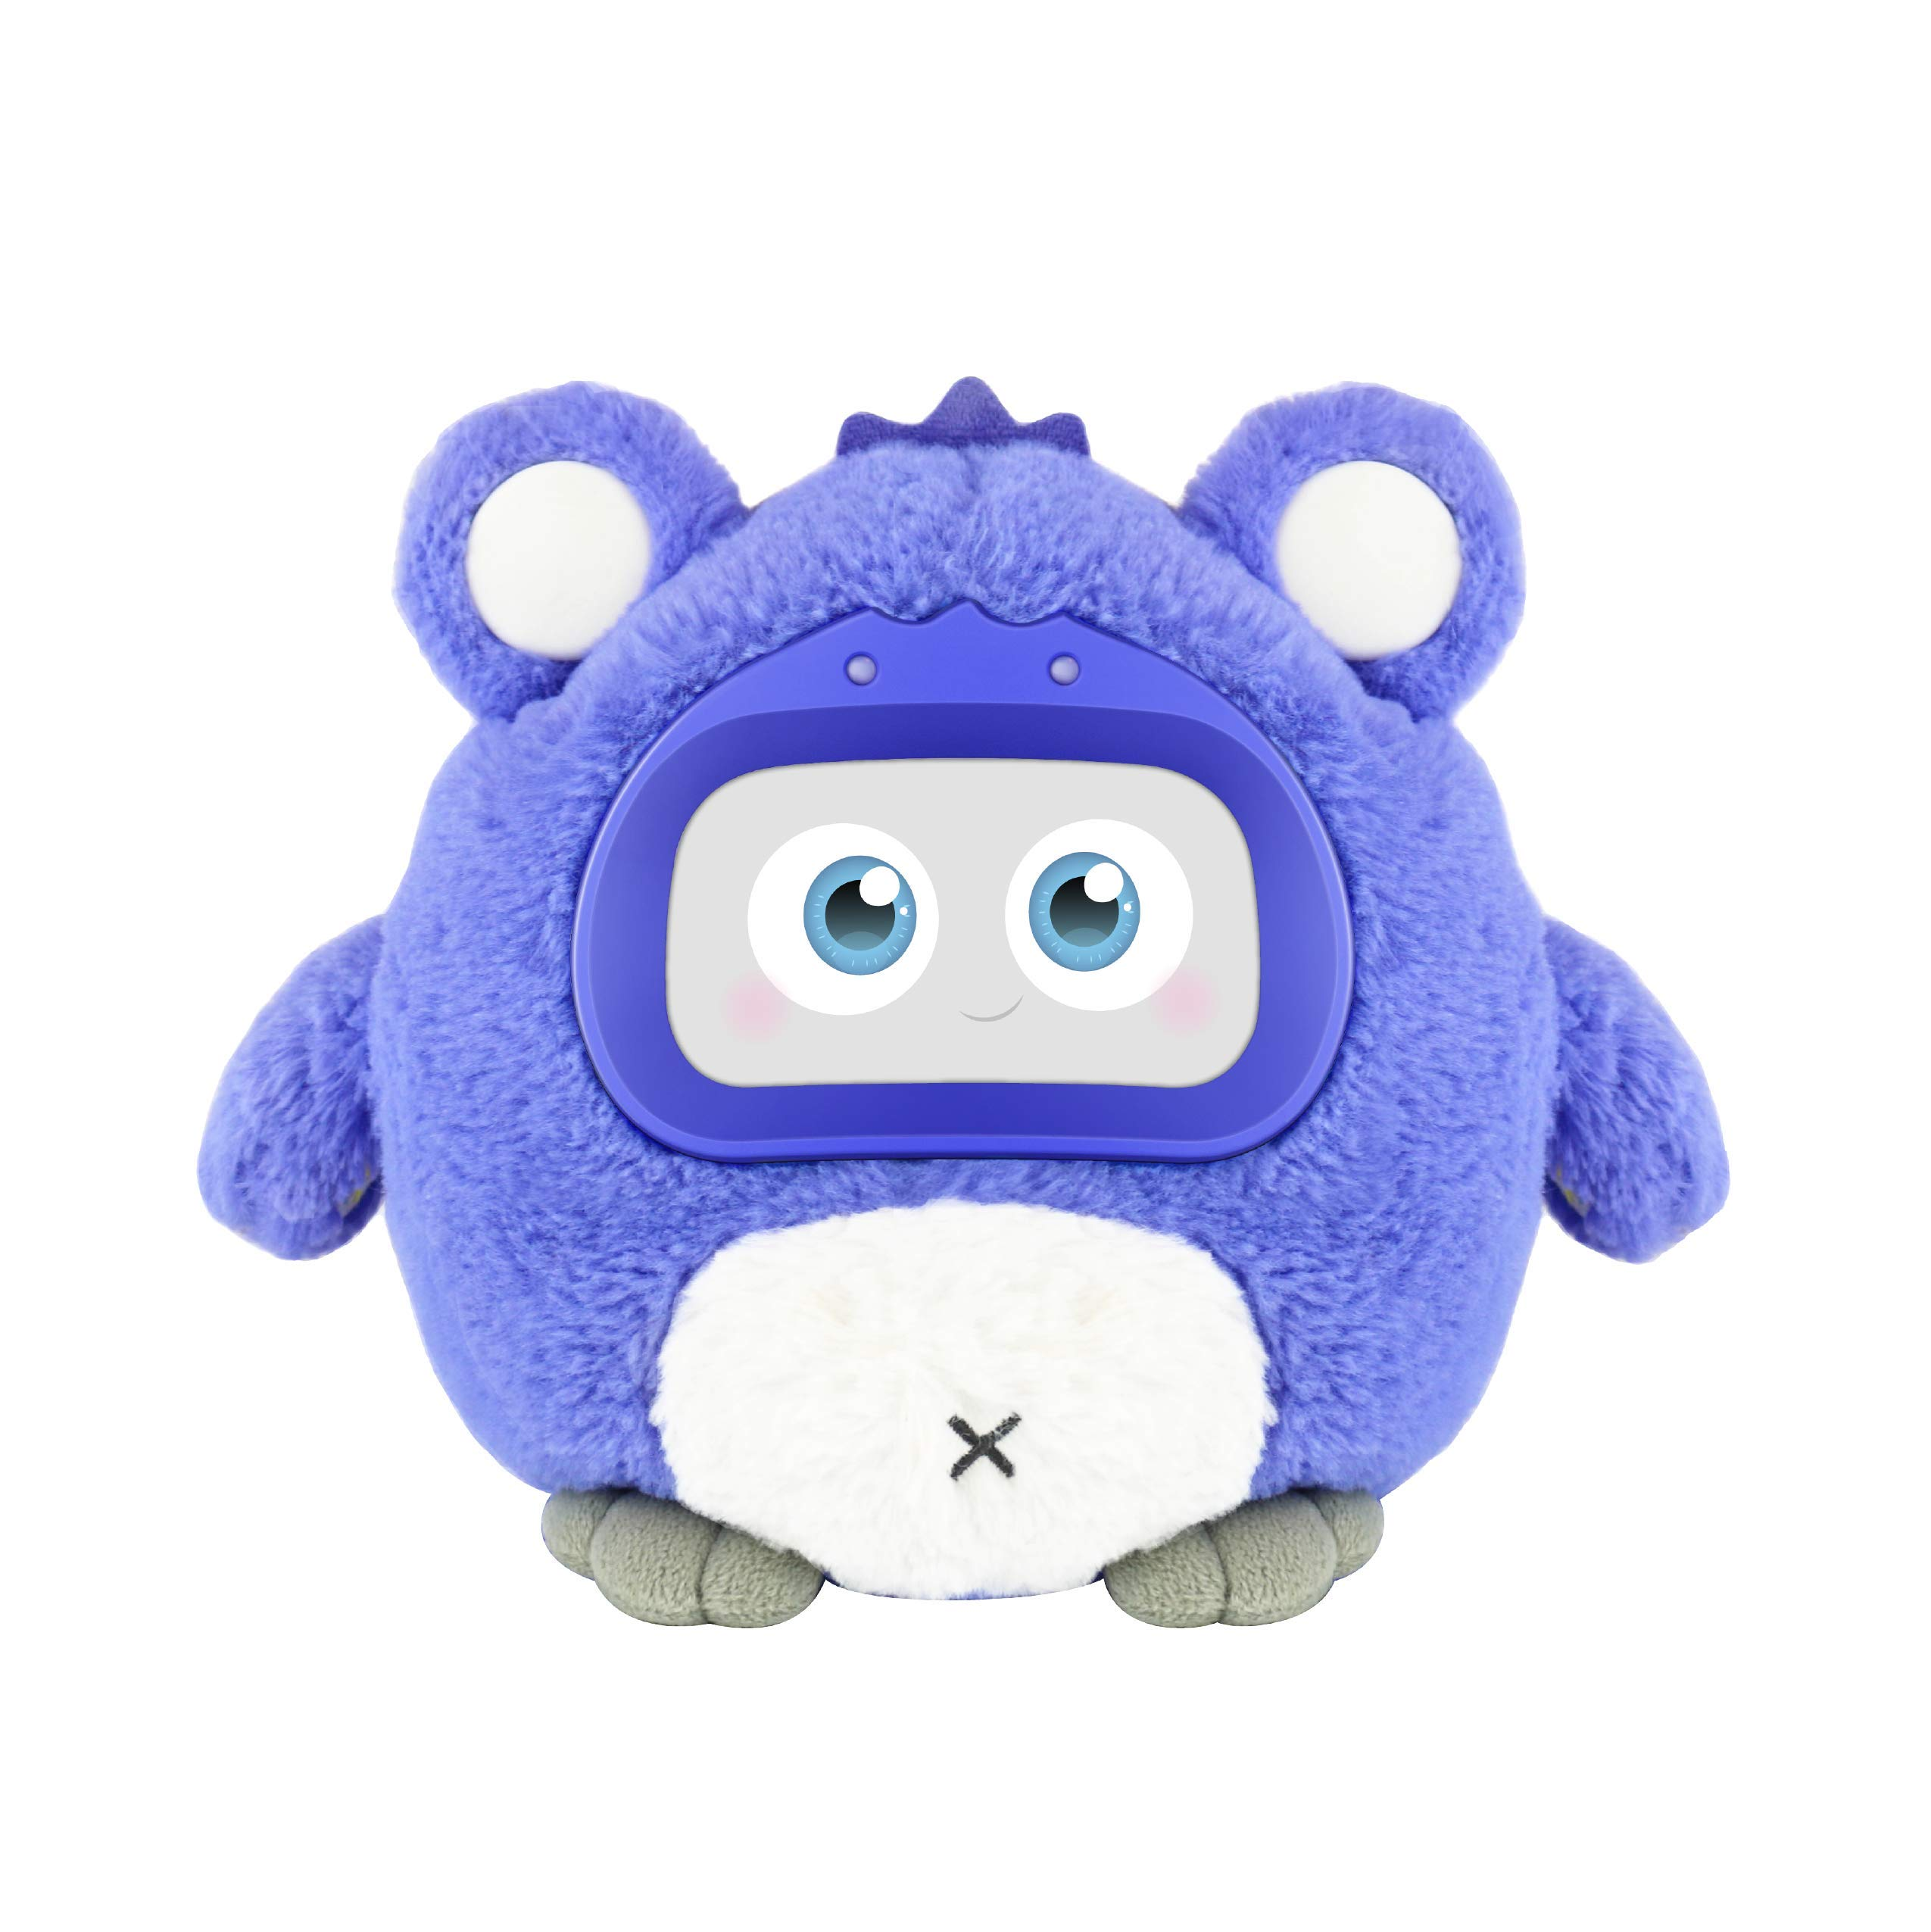 Woobo Lavender Lollipop - Interactive Robot for Curious Kids